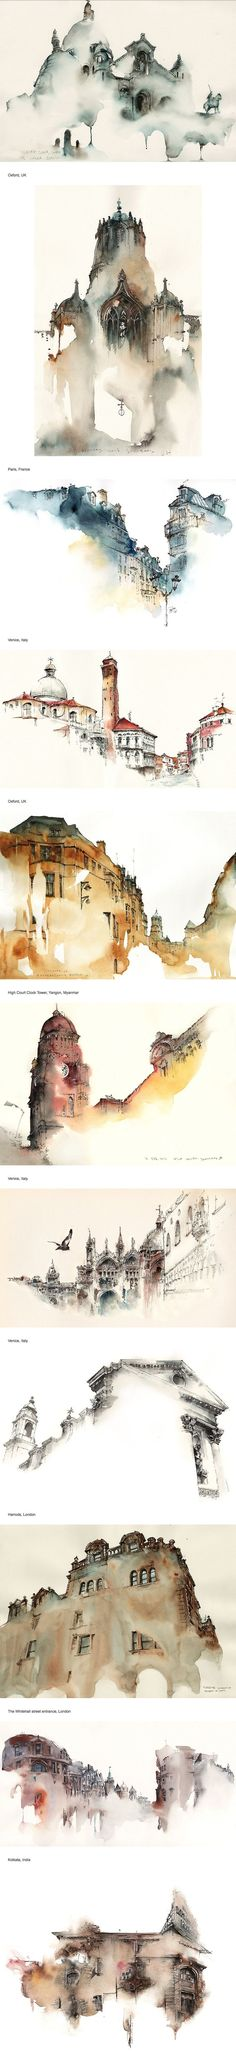 WOW NICE WORK.... Elusive Architecture in Watercolors of Korean Artist Sunga Park: